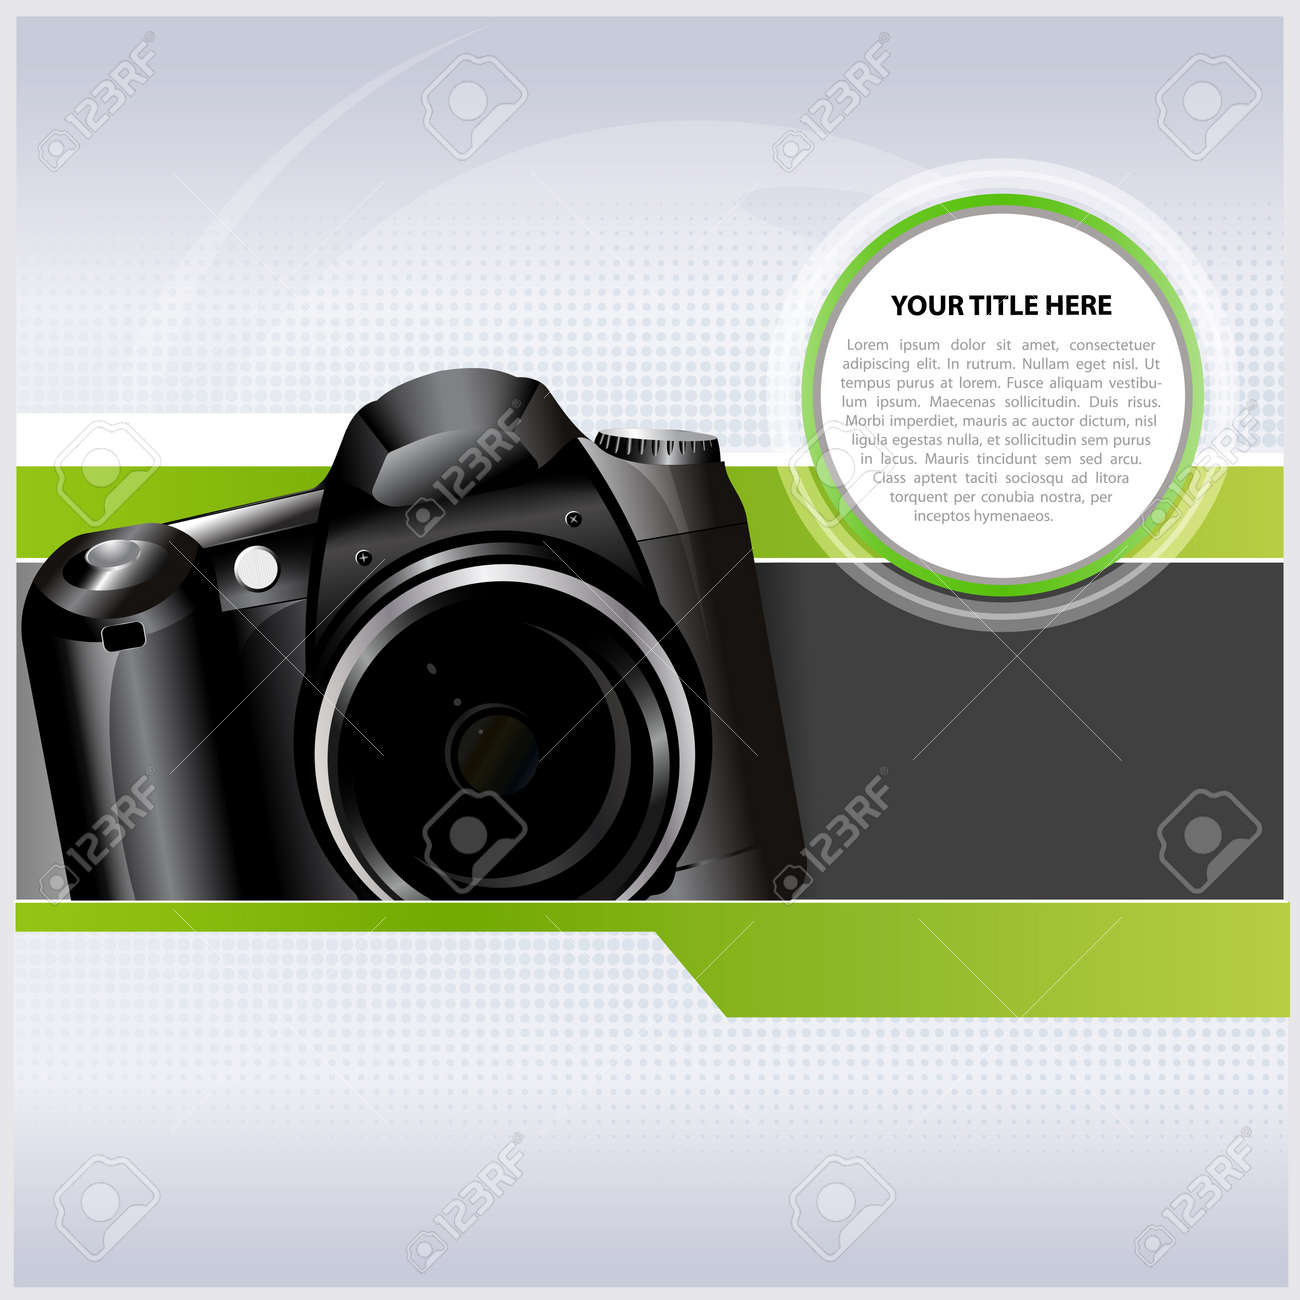 Abstract background with digital camera for text Stock Vector - 15904299